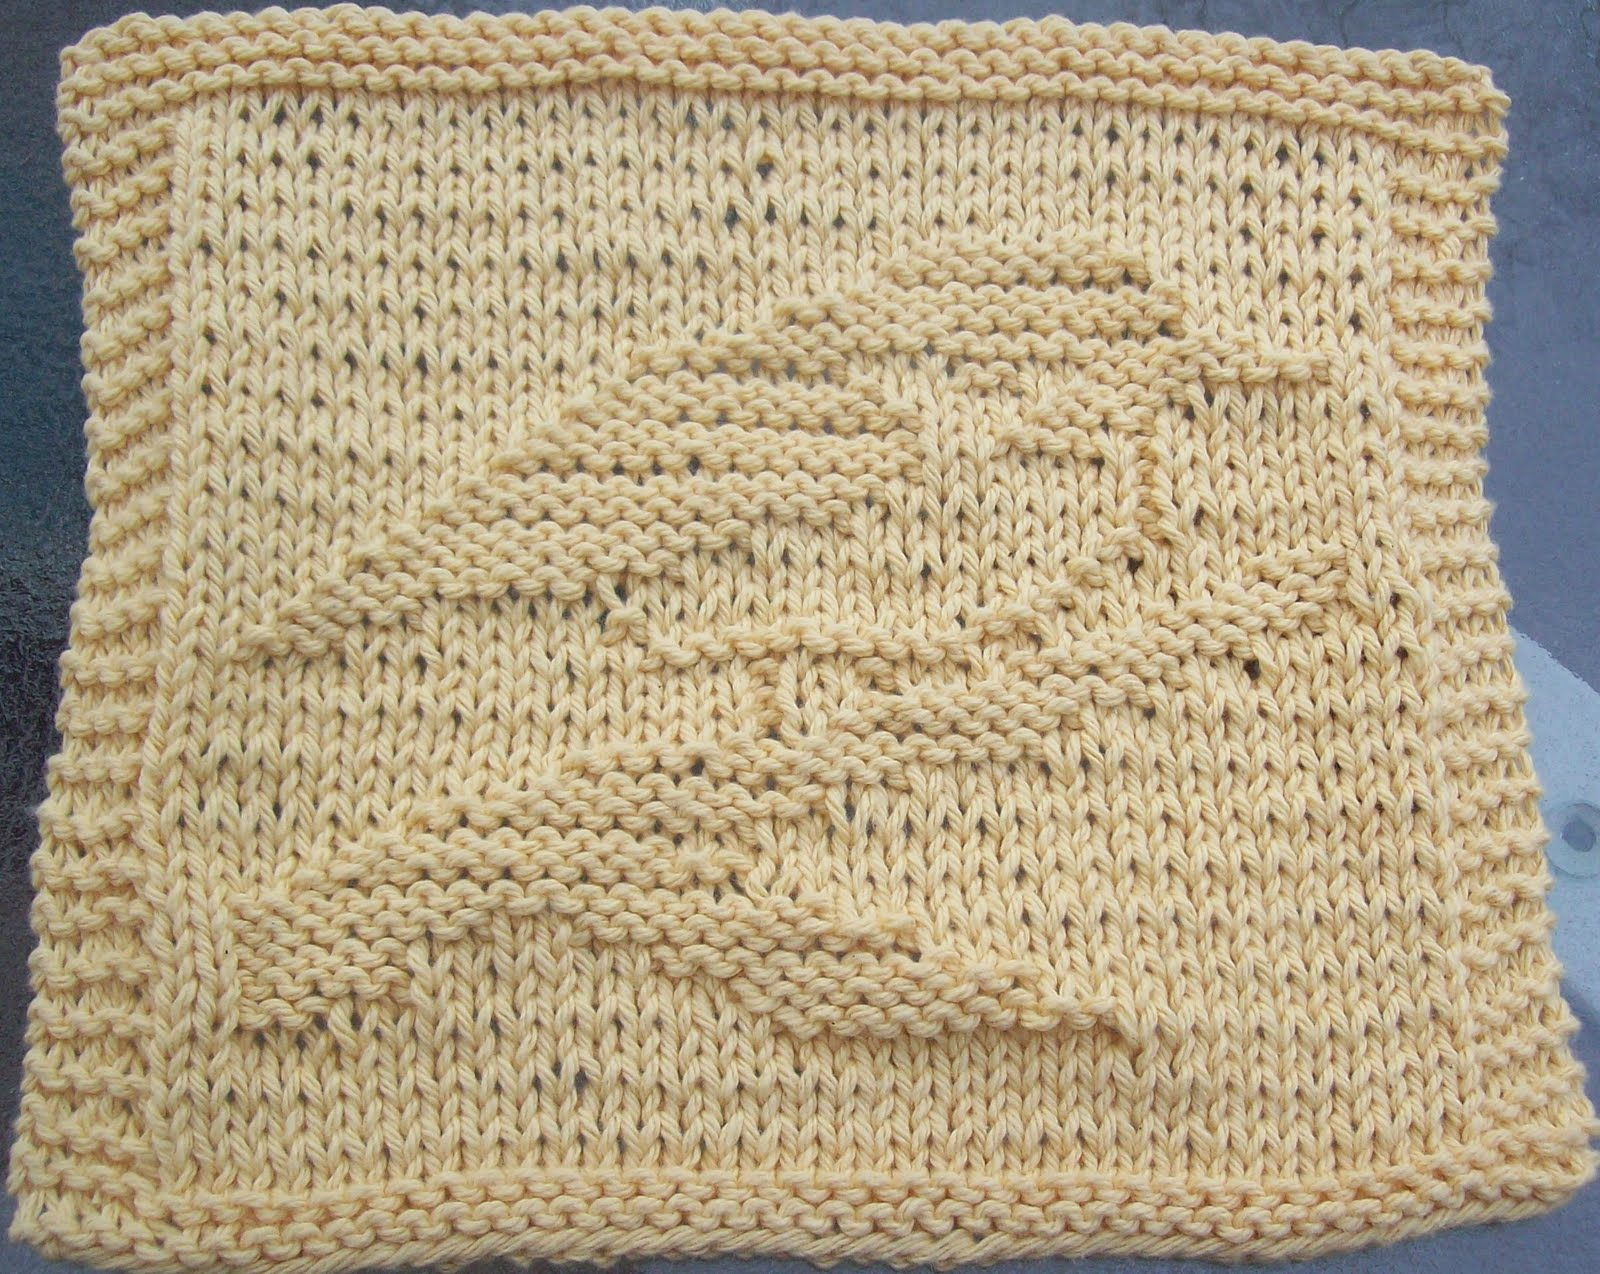 Knitted Dishcloth Patterns : DigKnitty Designs: Chickadee Knit Dishcloth Pattern